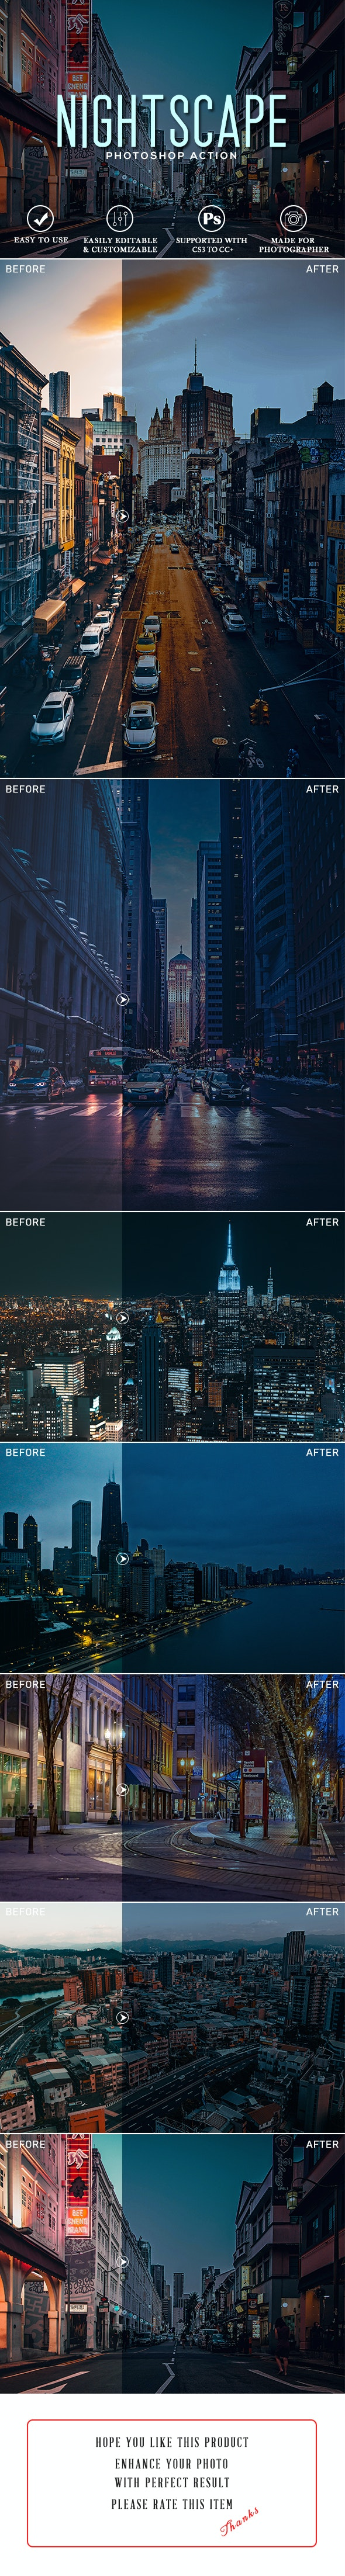 Nightscape Photoshop Action - Photo Effects Actions